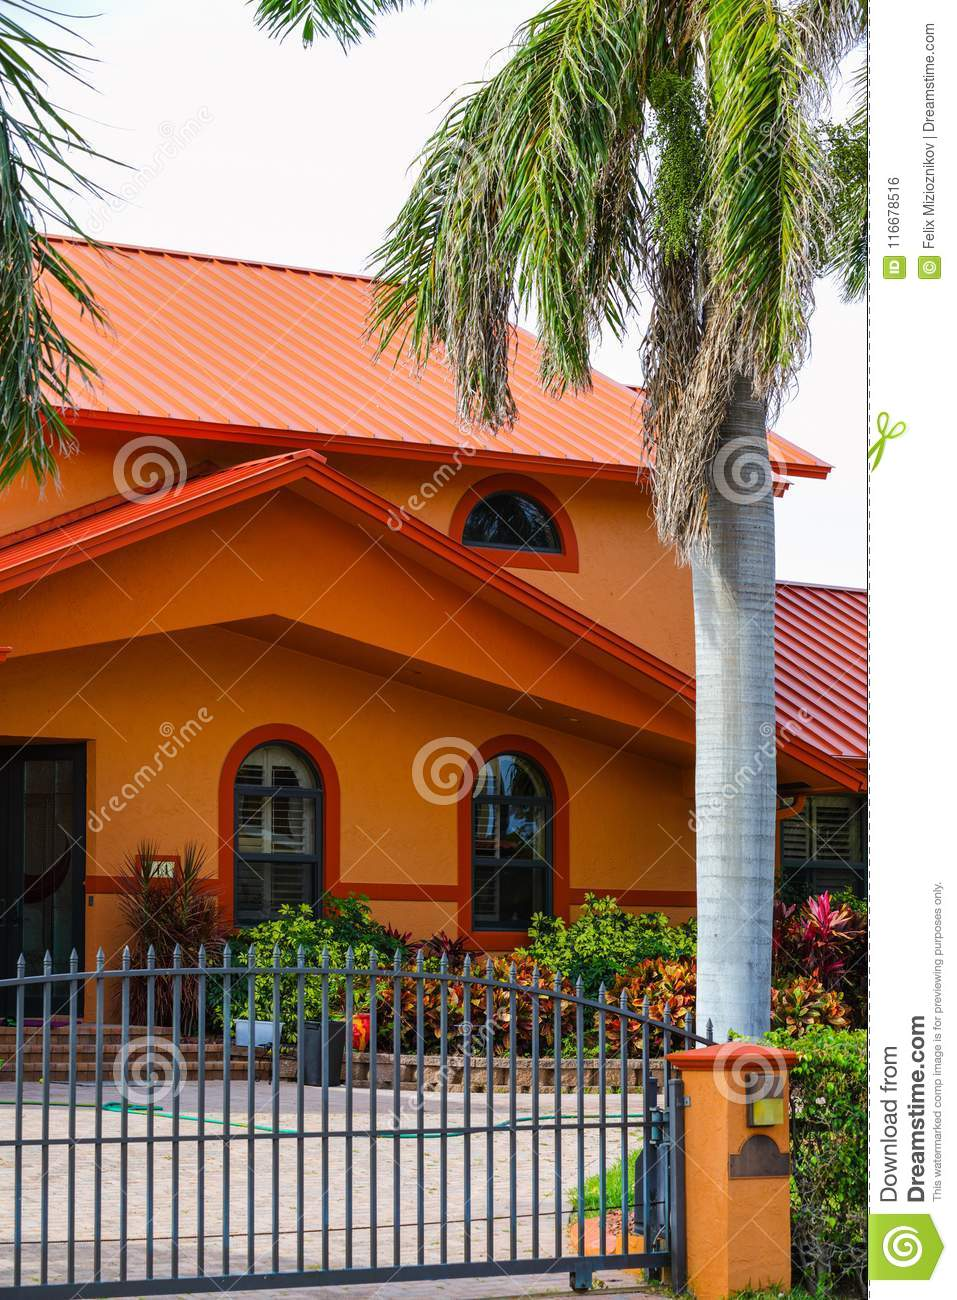 Vertical photo typical South Florida house with security fence a